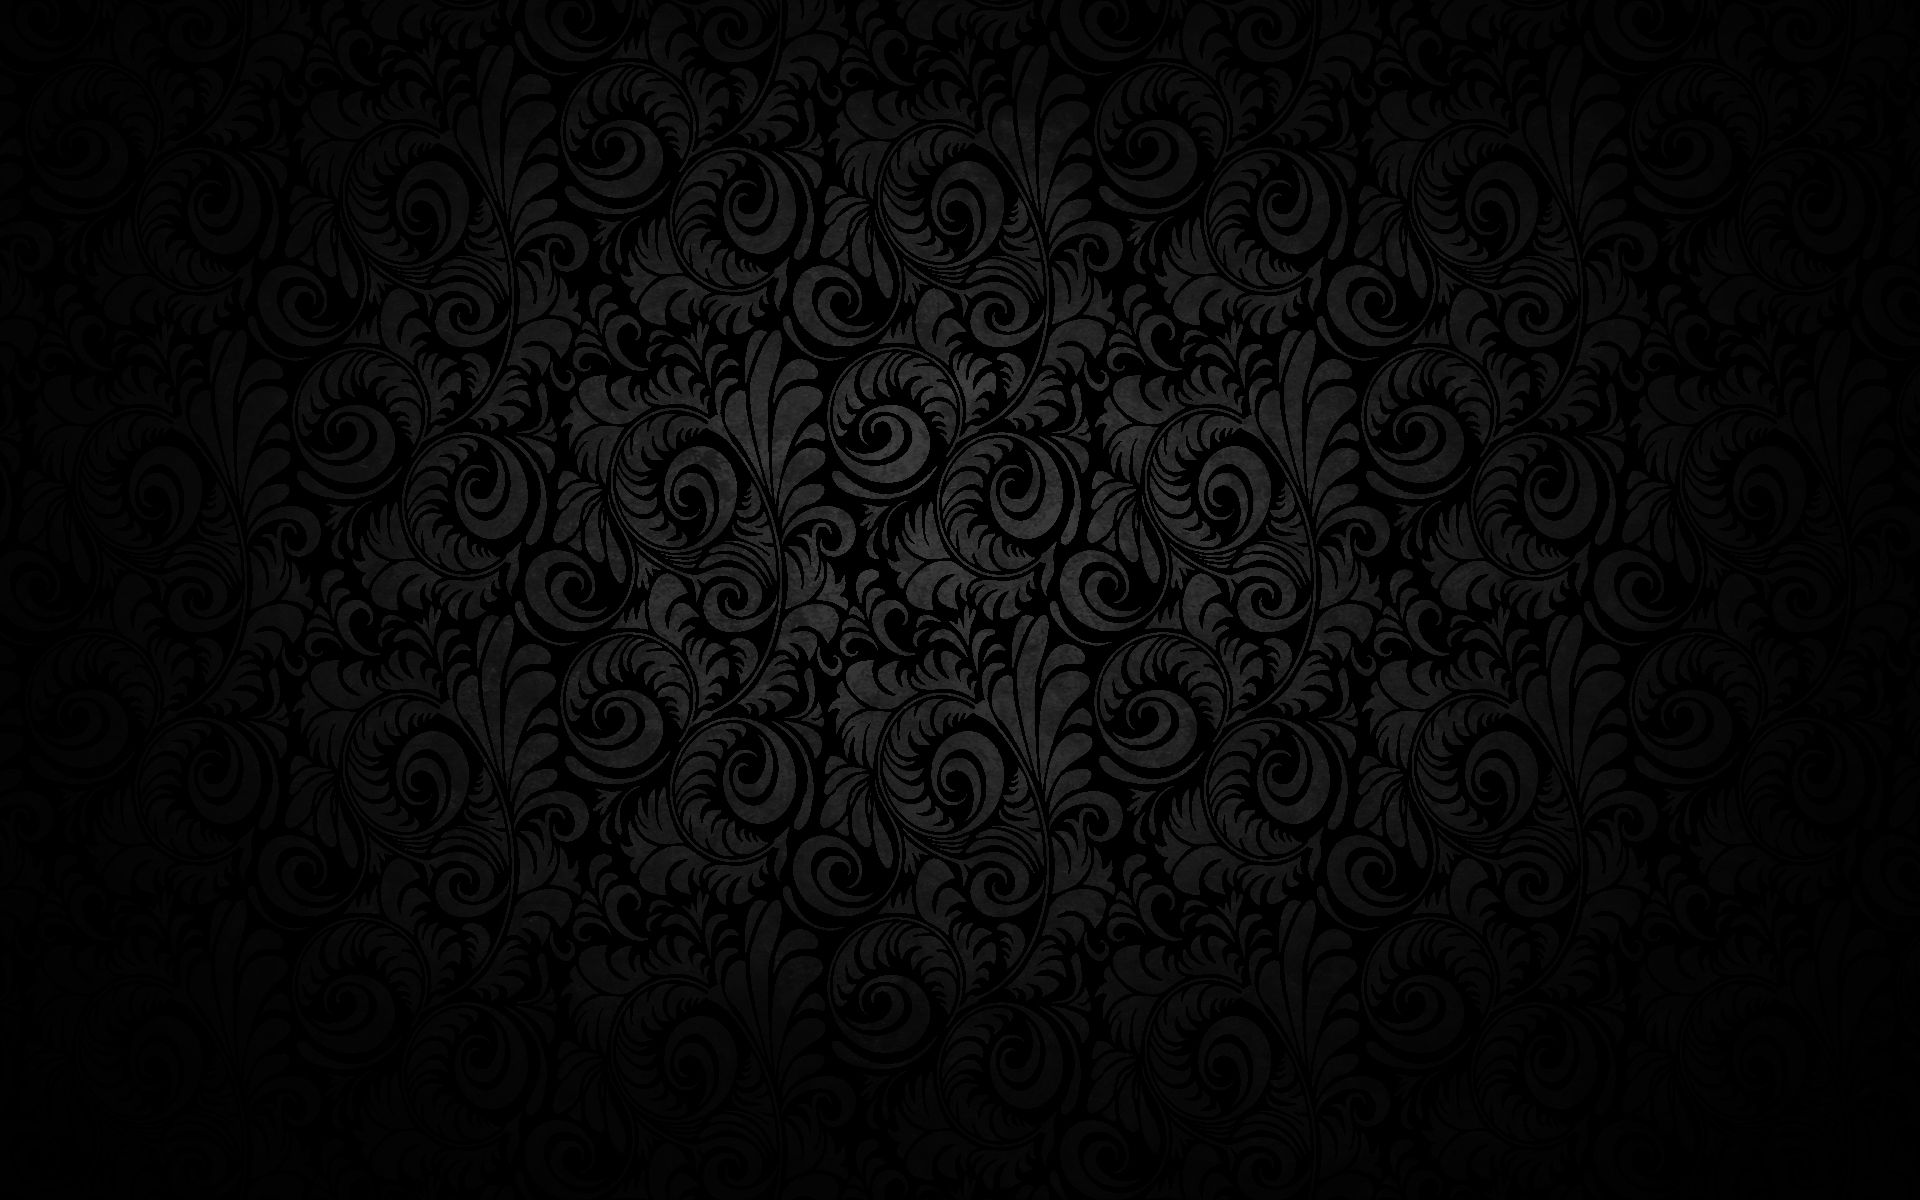 Black dress with peacock design wallpaper